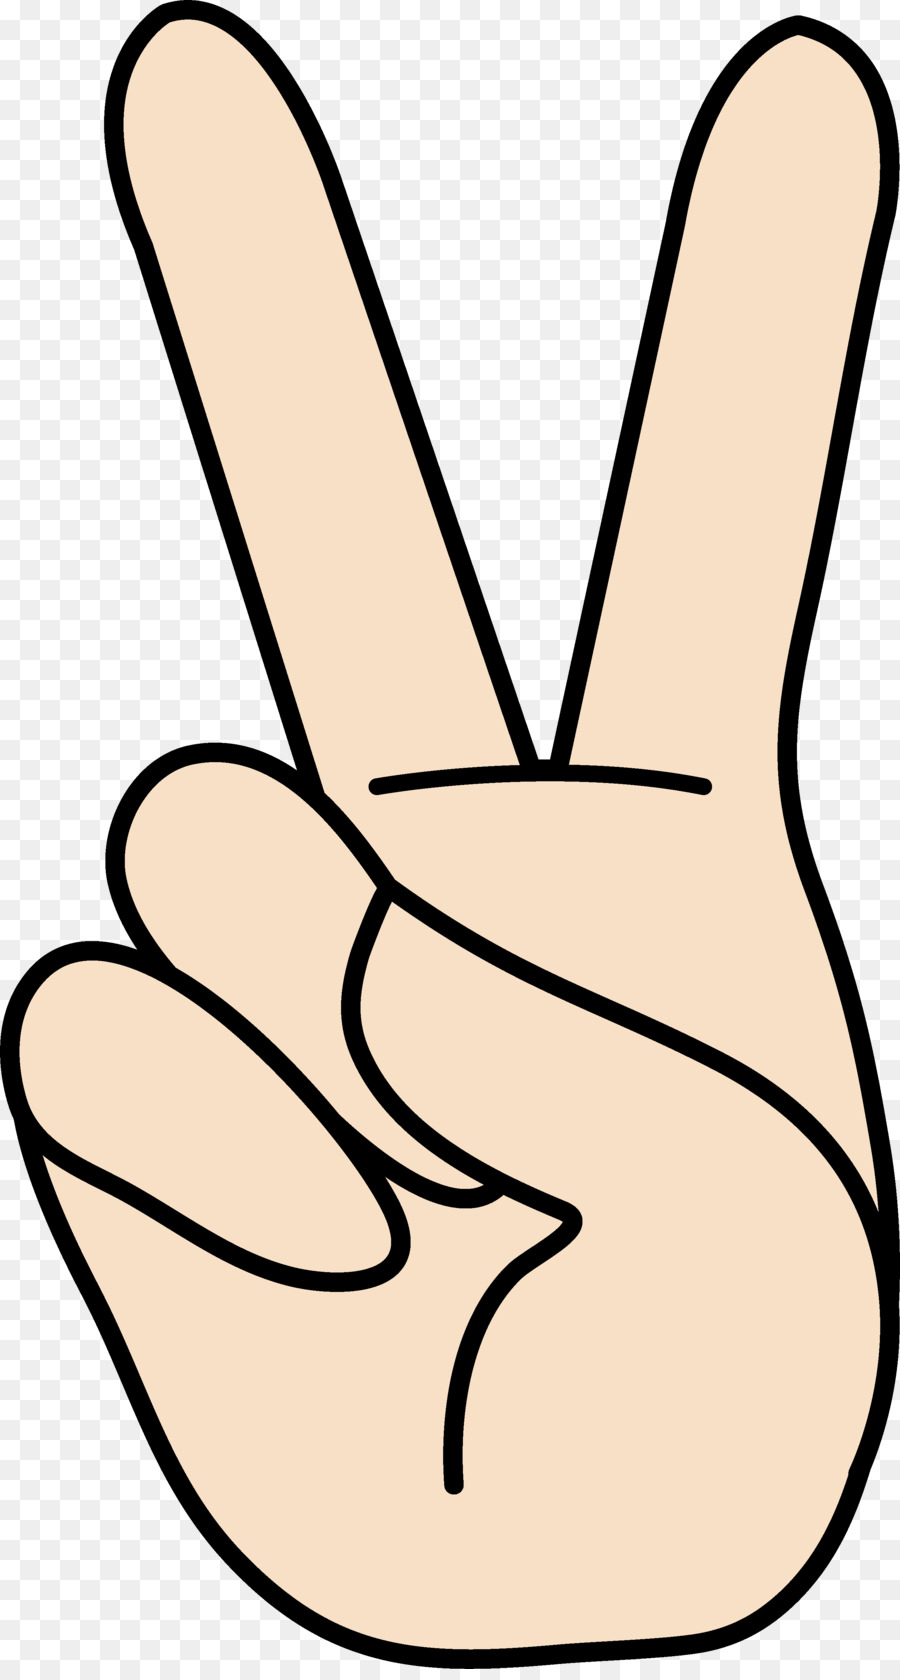 peace symbols v sign hand clip art side hand cliparts png download rh kisspng com free clipart peace sign peace sign clipart black and white